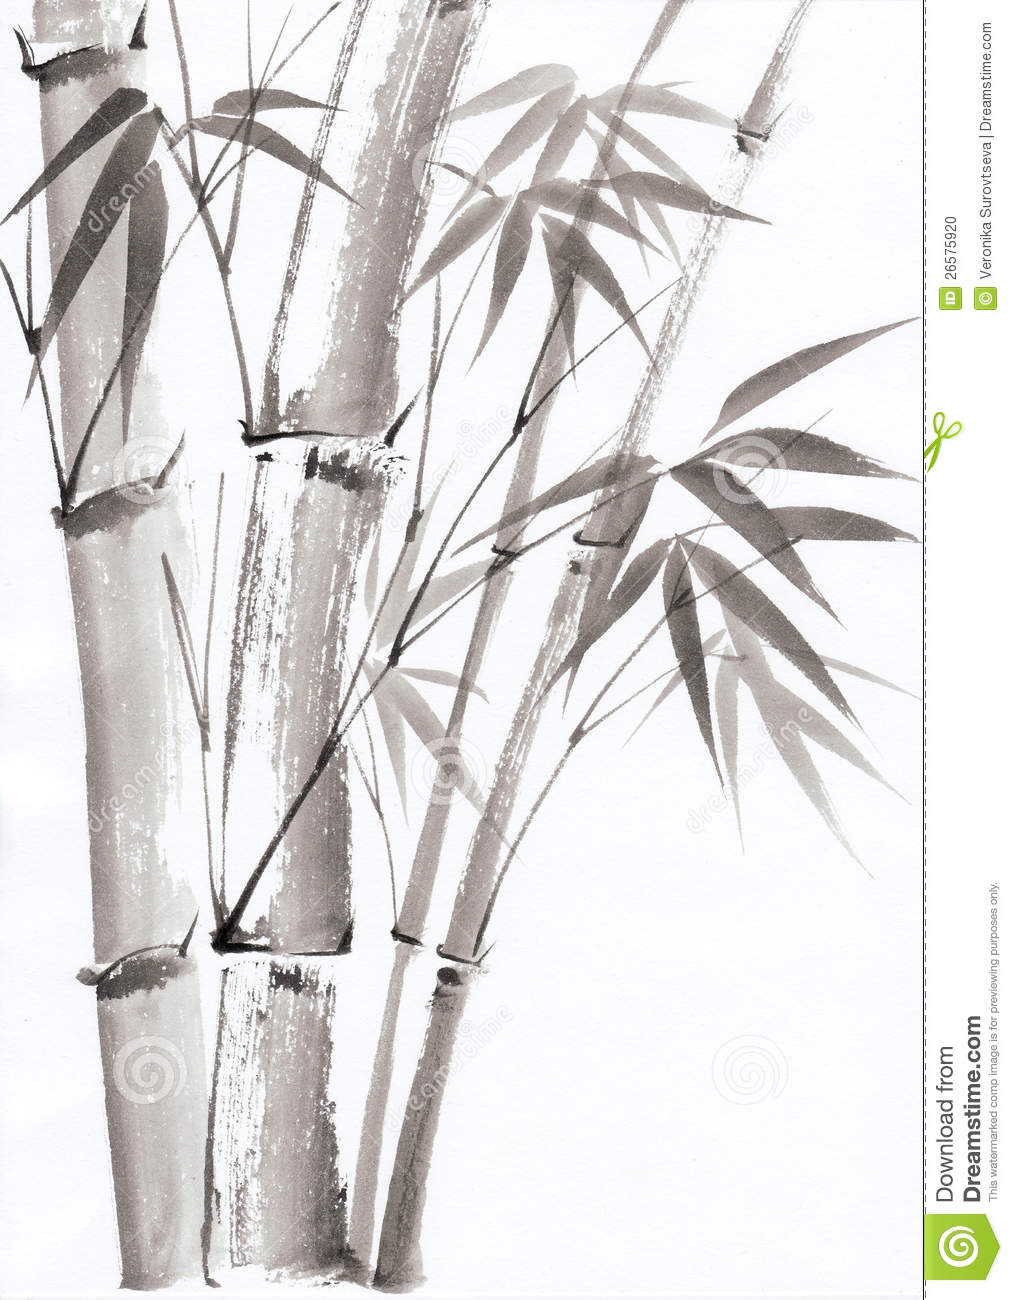 Watercolor Painting Of Bamboo Stock Photo - Image: 26575920